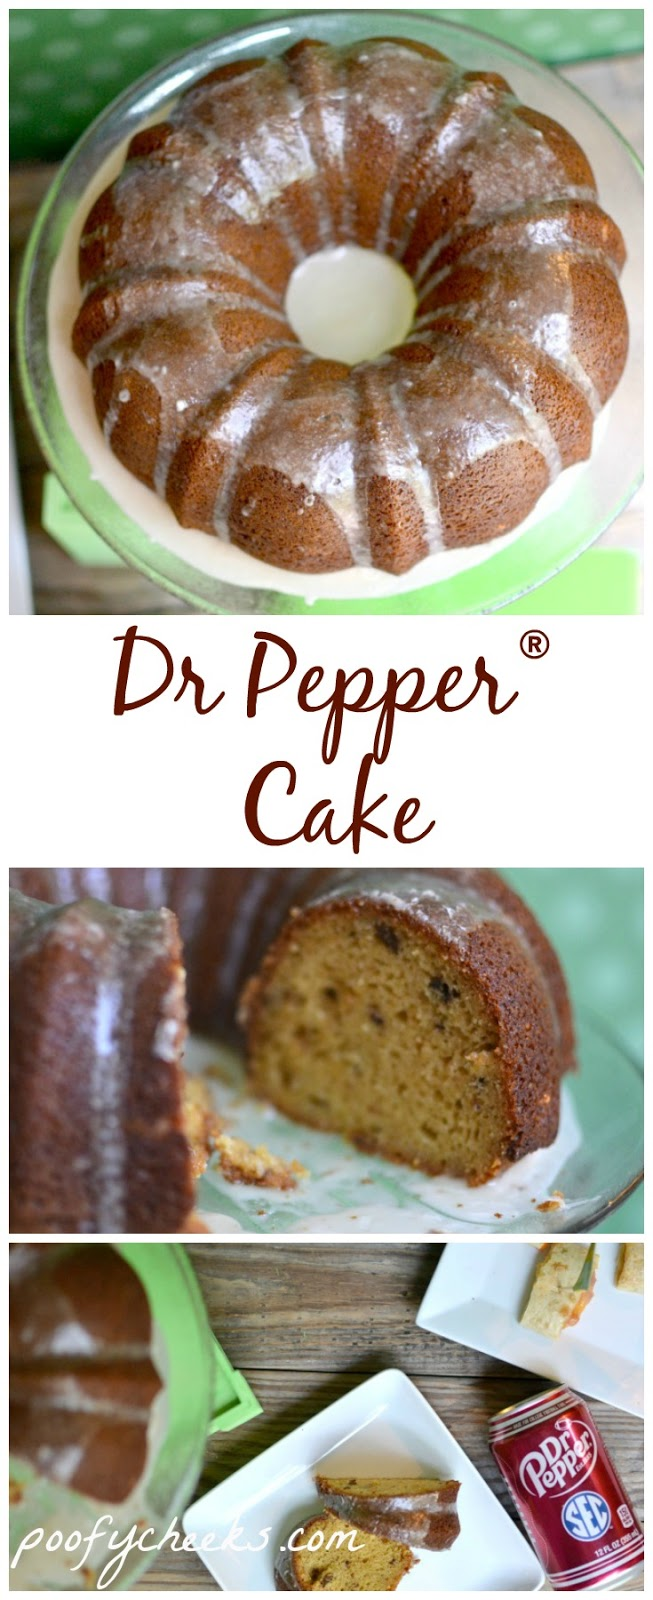 Dr. Pepper Cake Recipe - a family favorite dessert for when we all gather together.